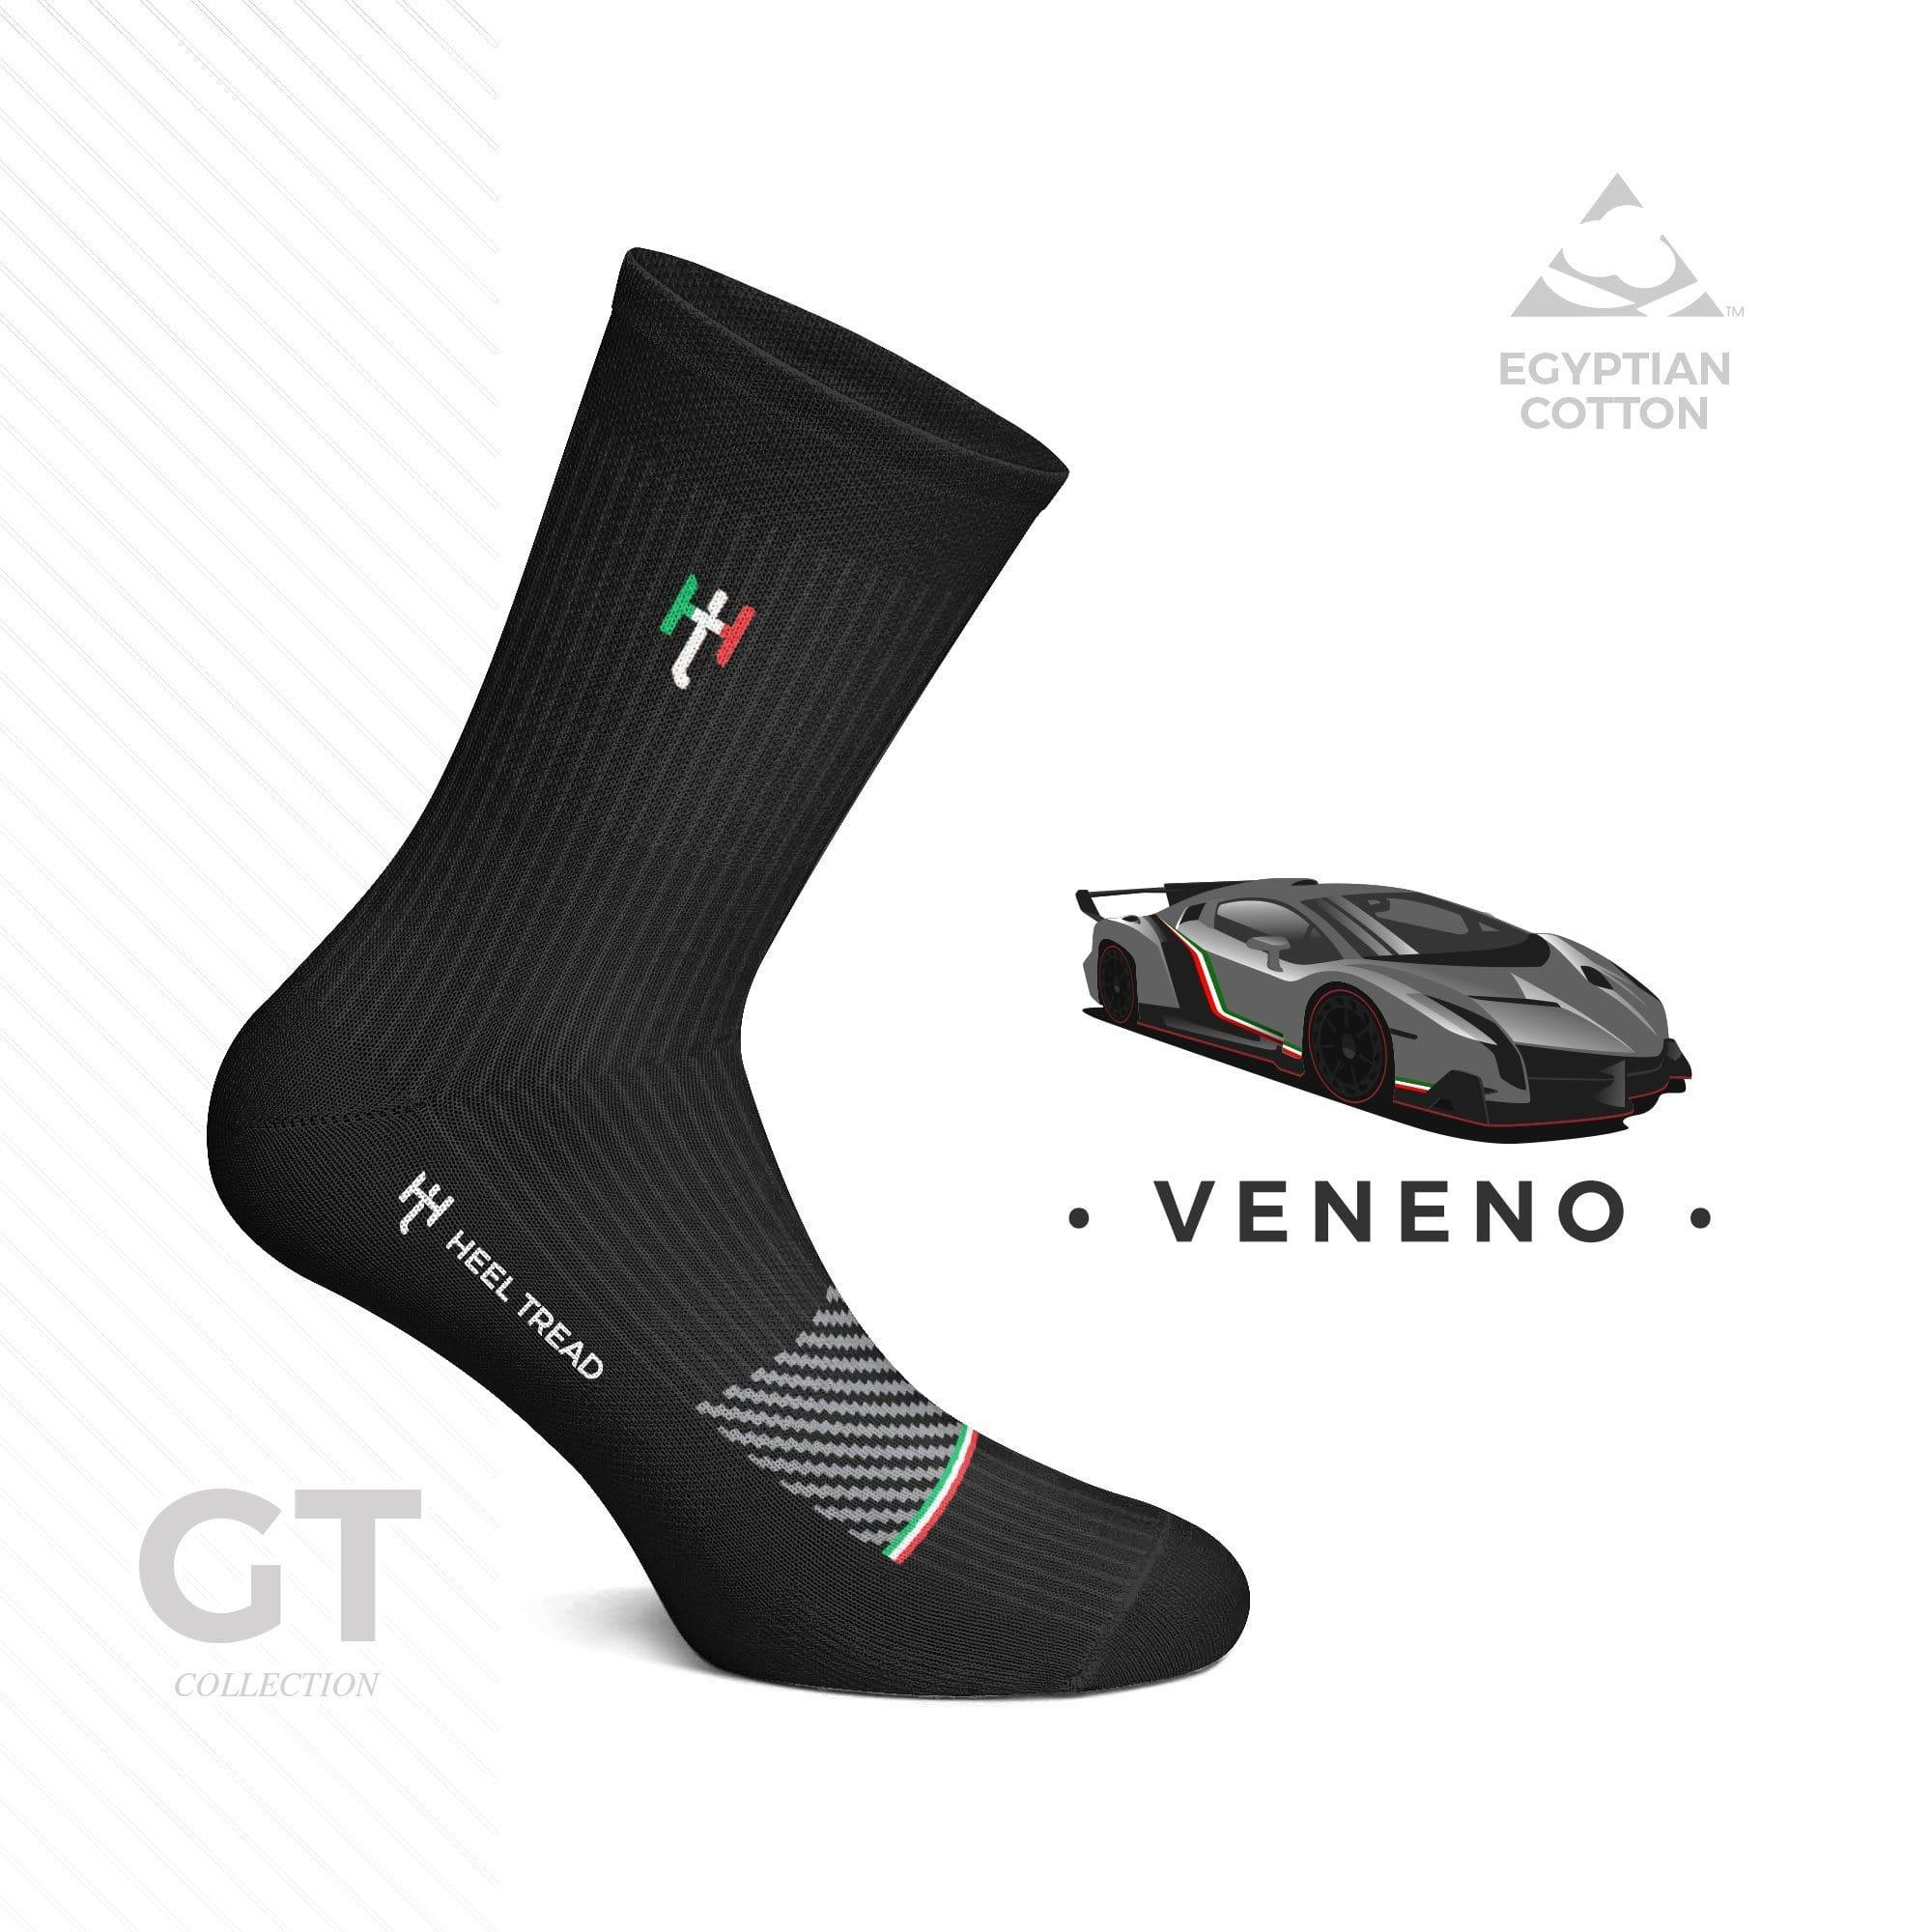 VENENO GT SOCKS - Corleon